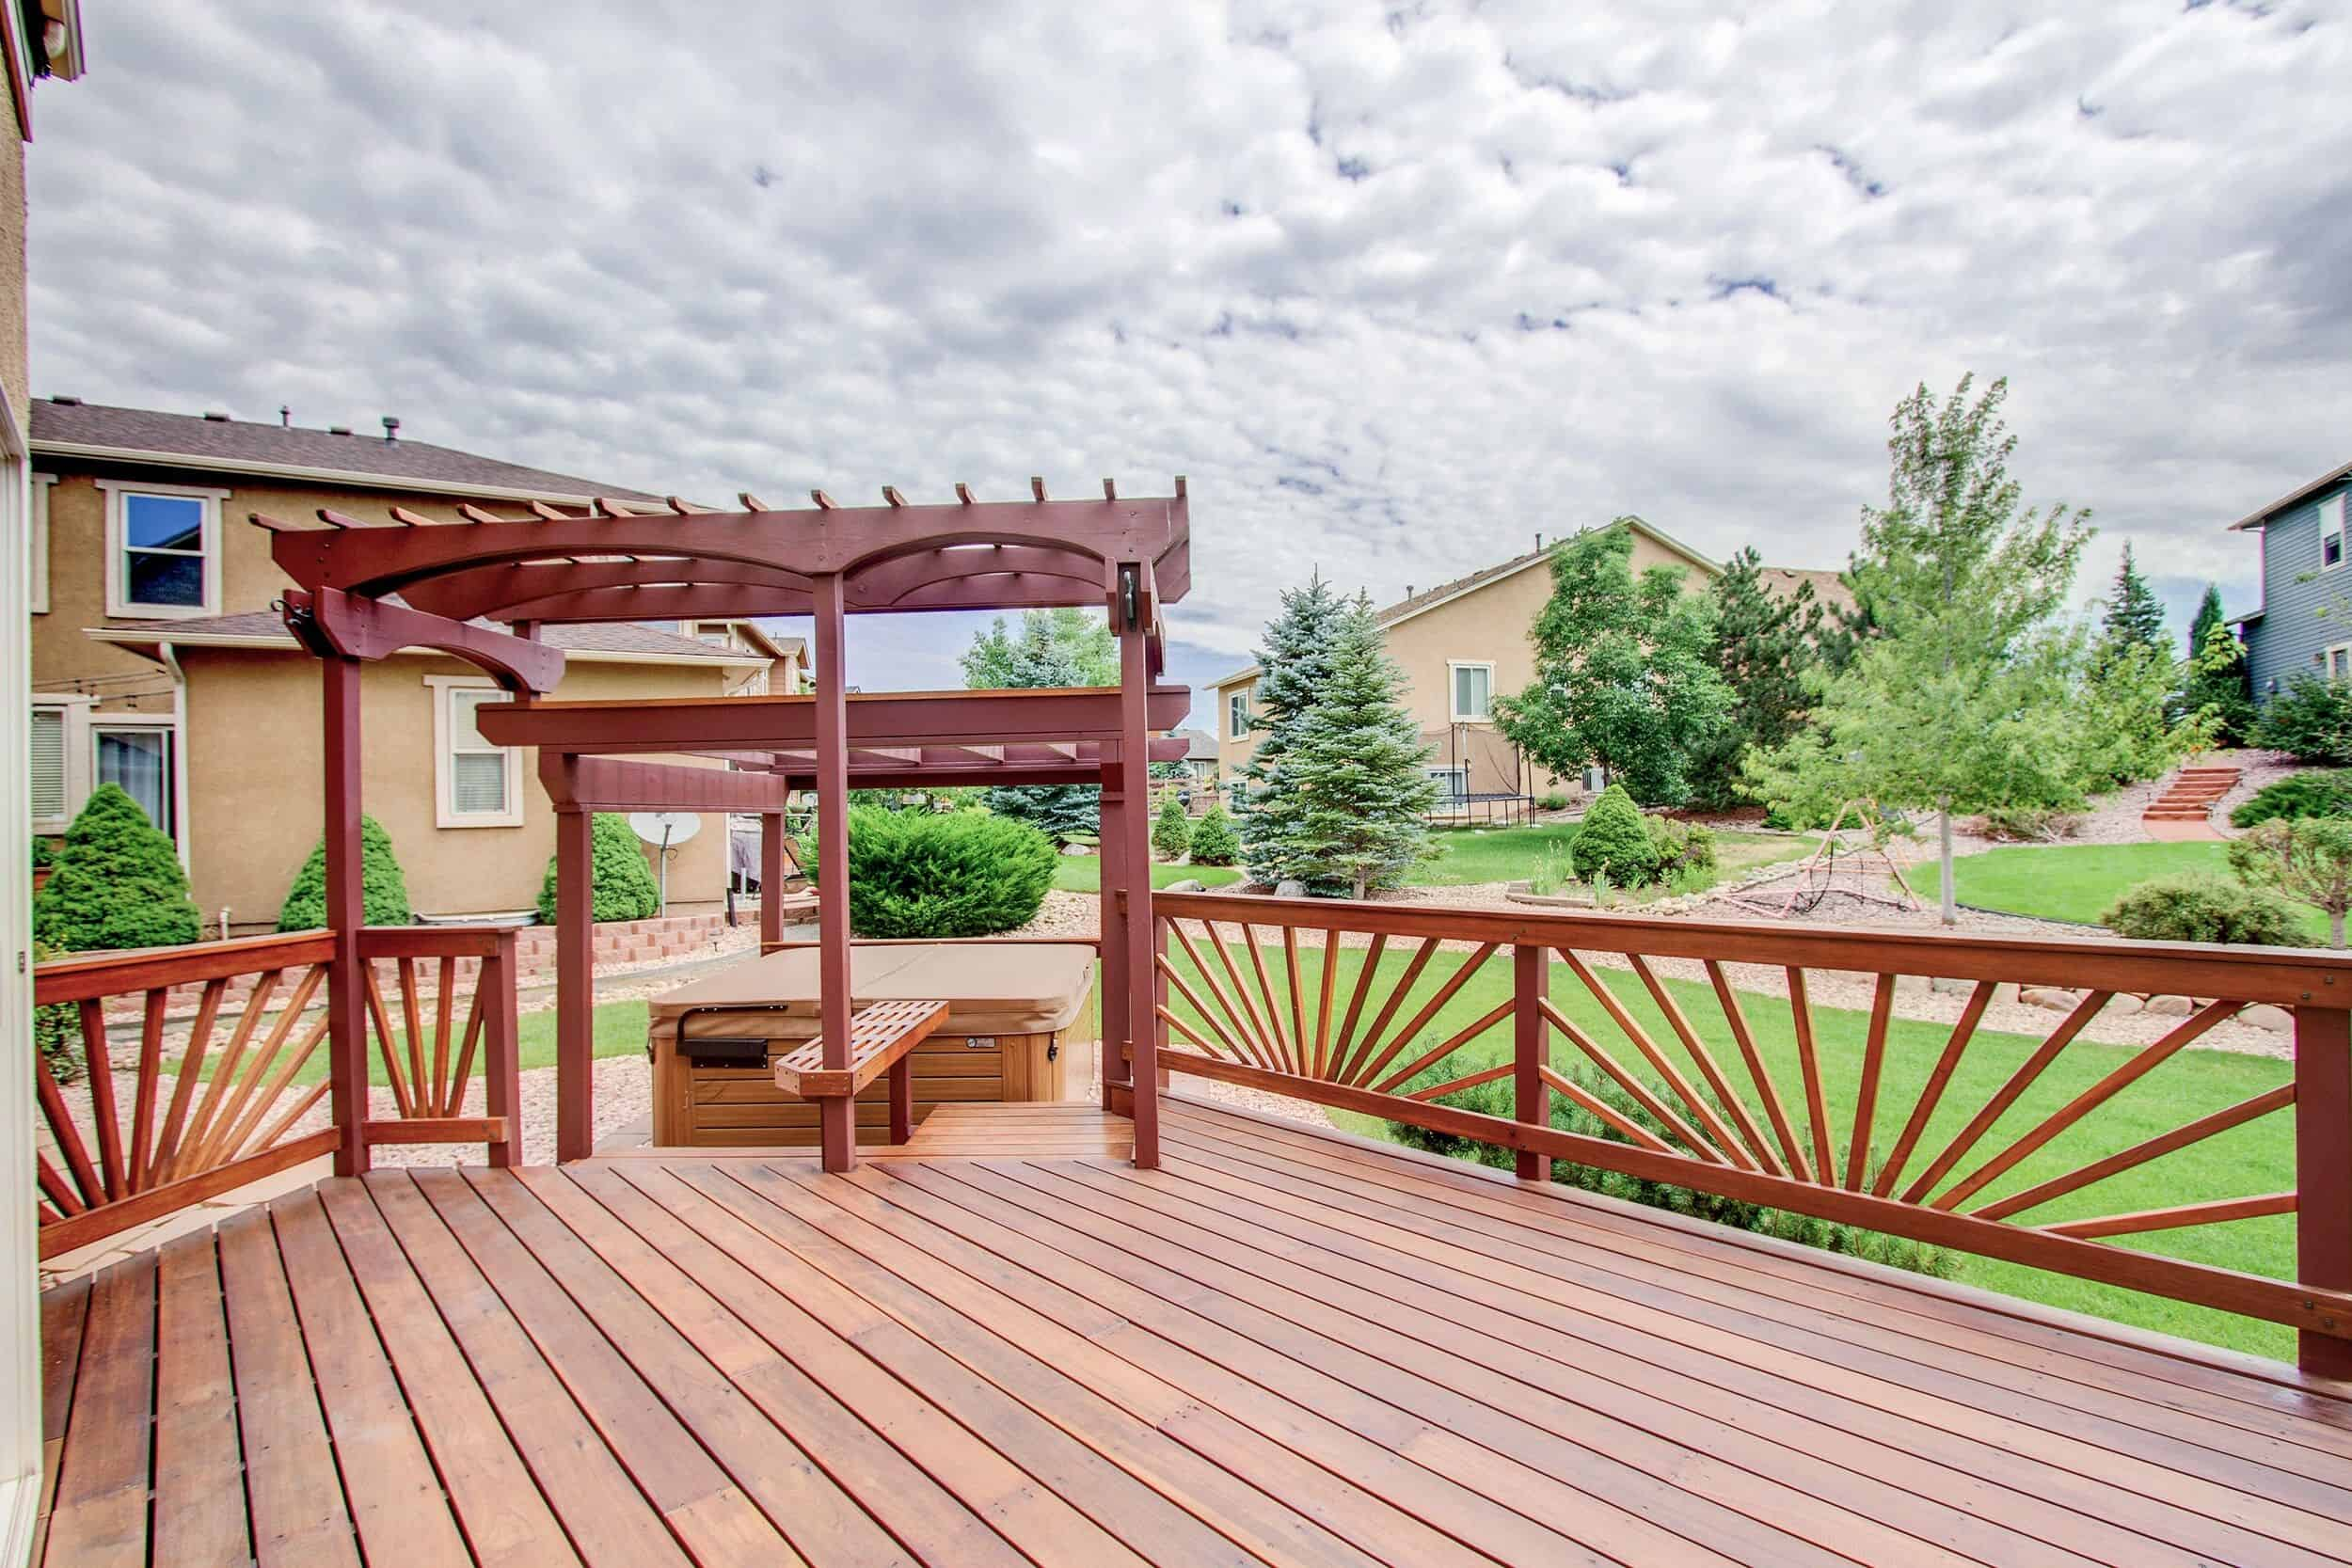 Landscaped Yard, Deck, Pergola and Hot Tub